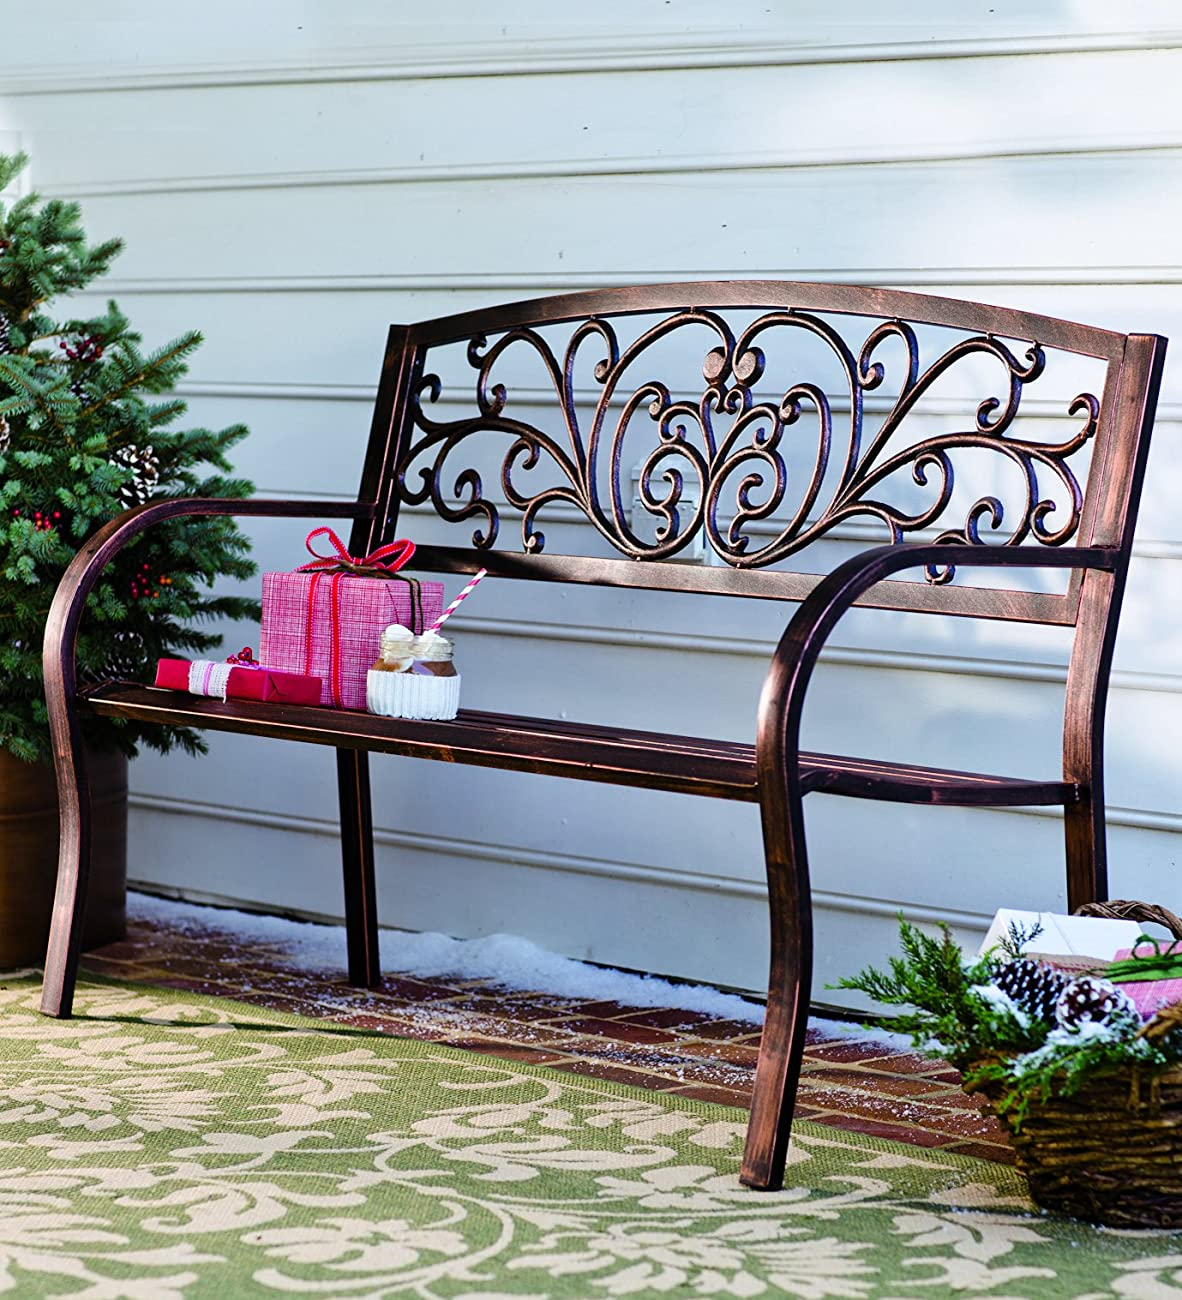 Plow & Hearth Blooming Patio Garden Bench Park Yard Outdoor Furniture, Iron Metal Frame, Elegant Bronze Finish, Easy Assembly 50 in L x 17 1/2 in W x 34 1/2 in H 2